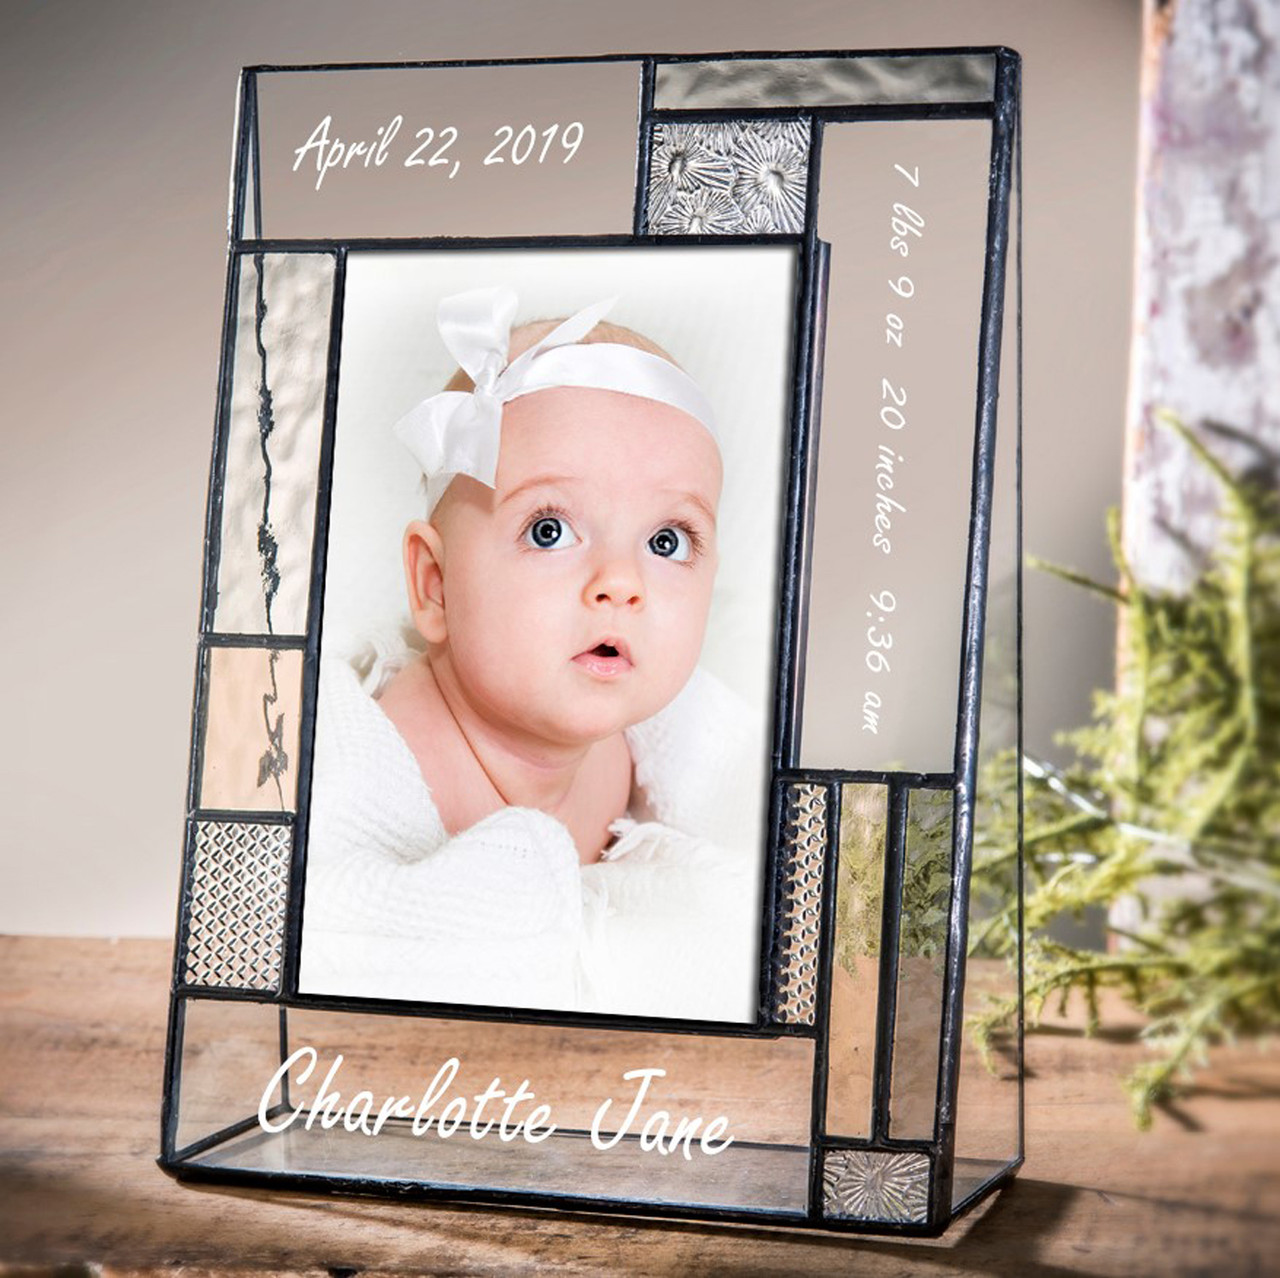 Personalized 4x6 photo frame picture frame with Custom Engraving Engraved photo frame